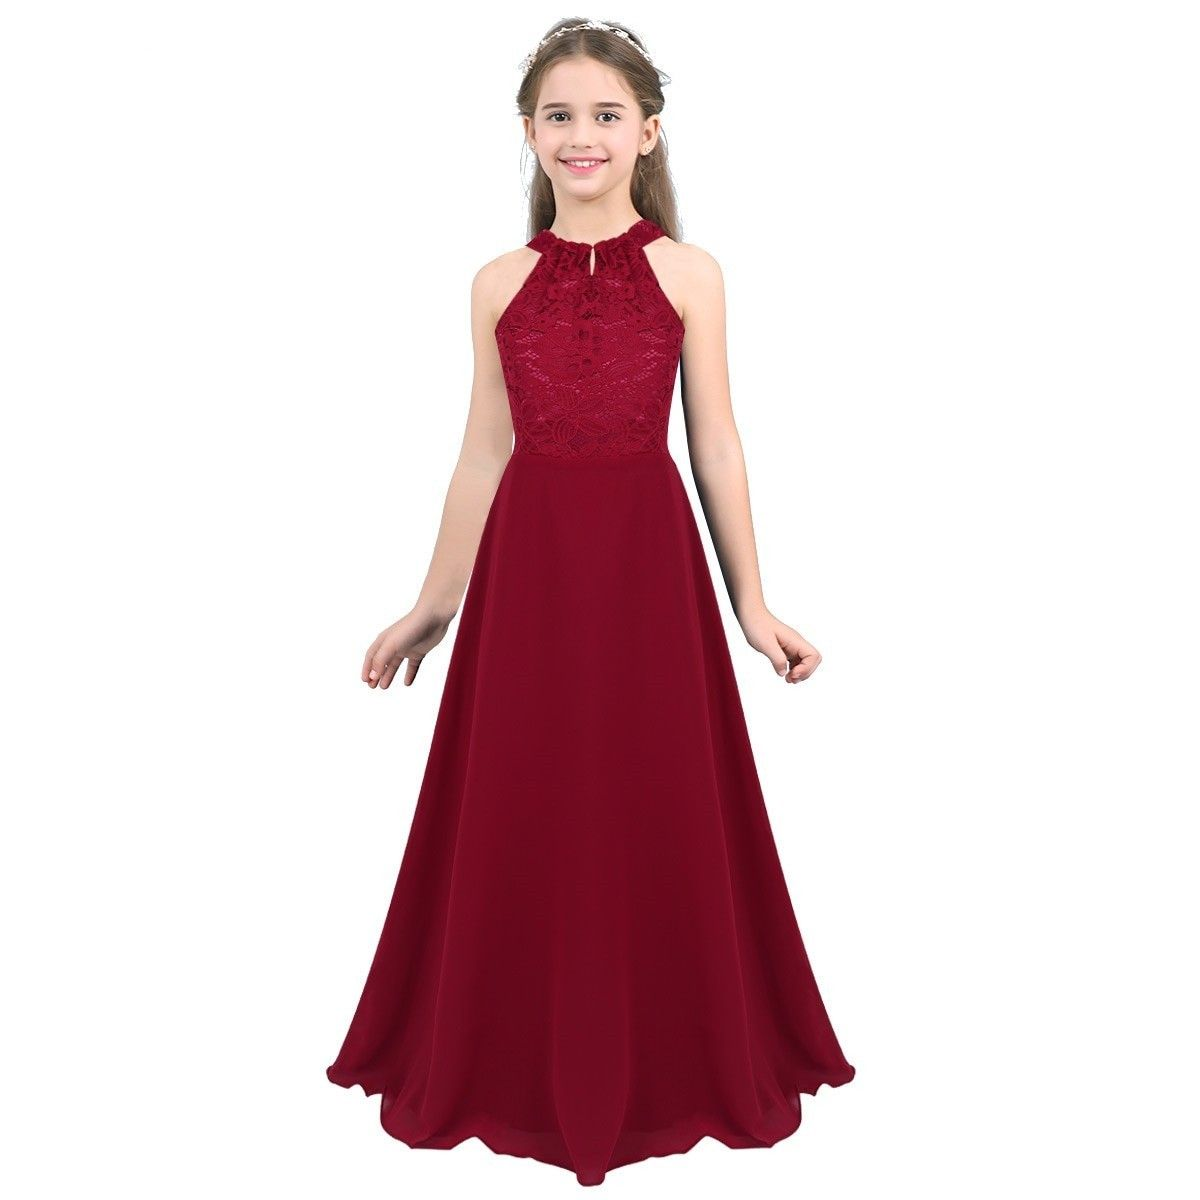 Flower Girls Dress Bridesmaid Wedding Party Princess Floral Lace Chiffon Gown